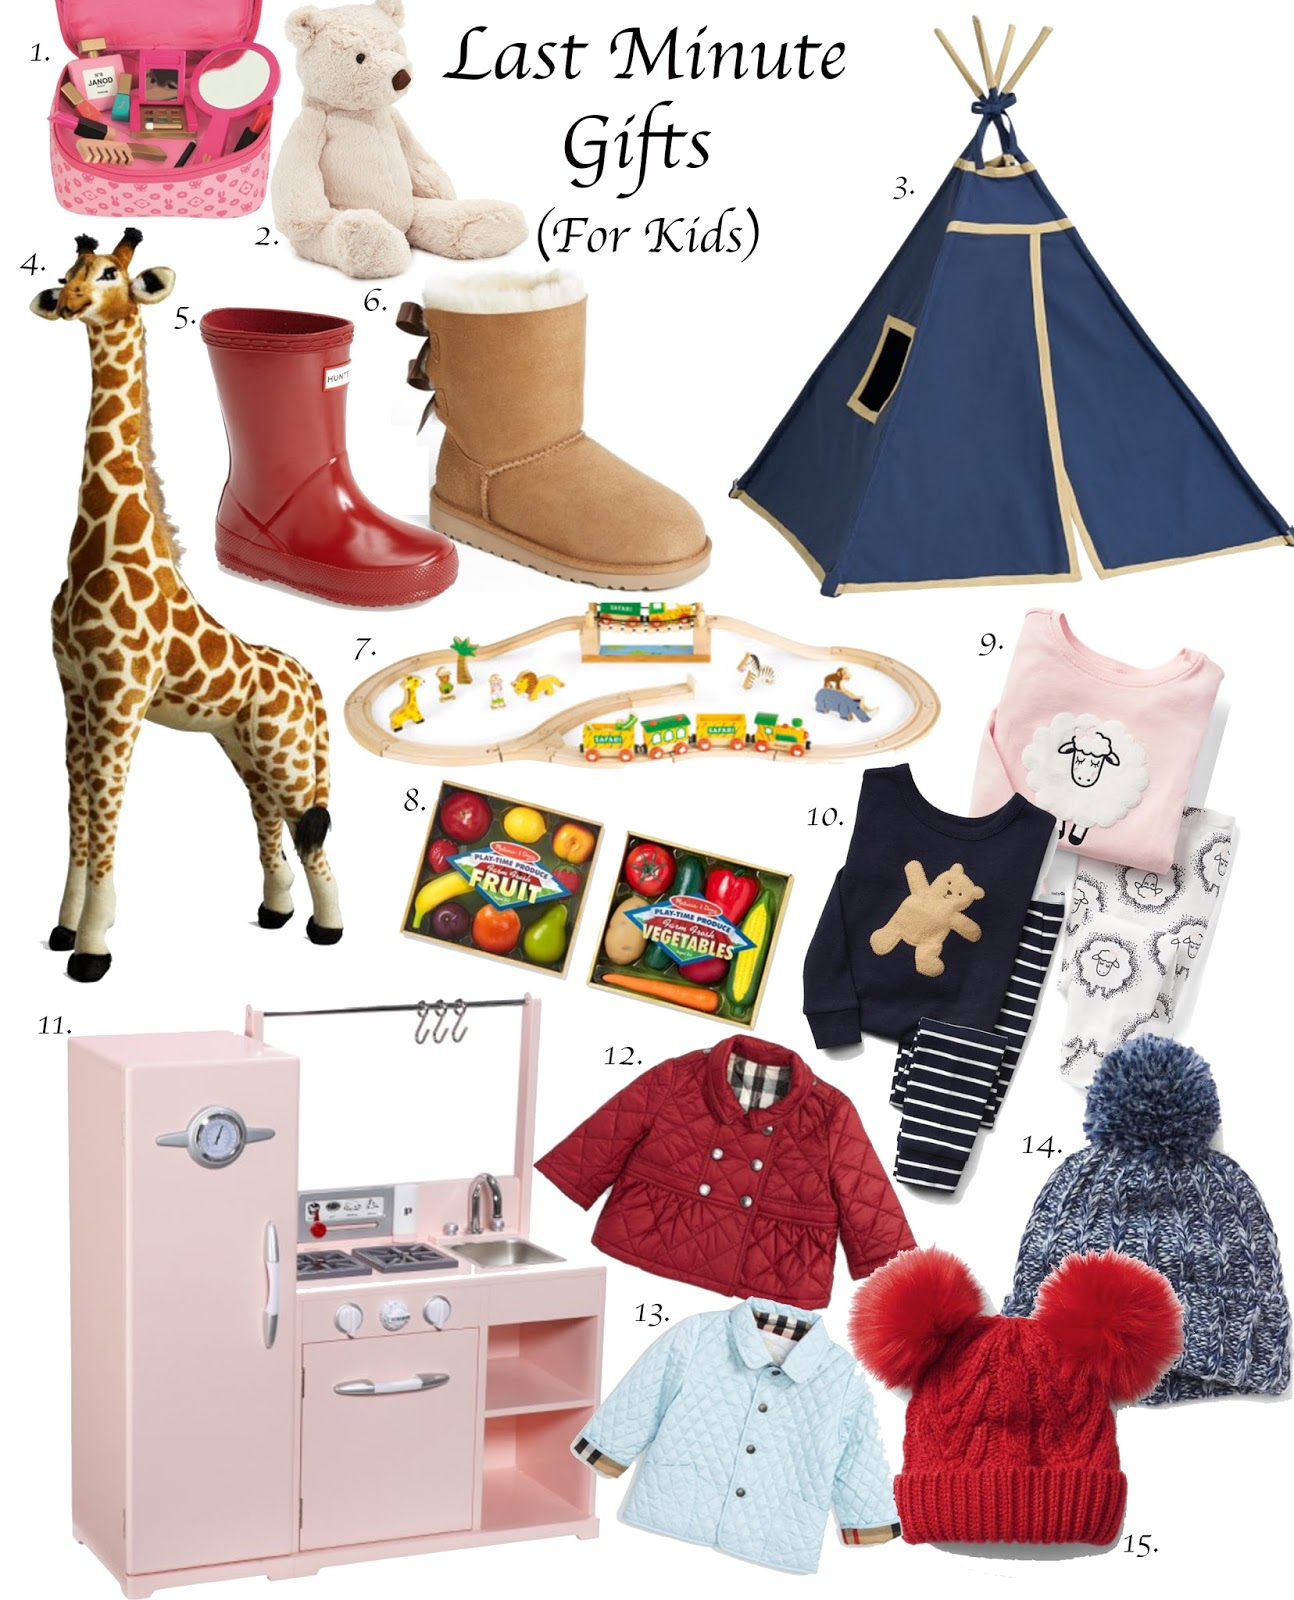 Gifts For Kids - Something Delightful Blog